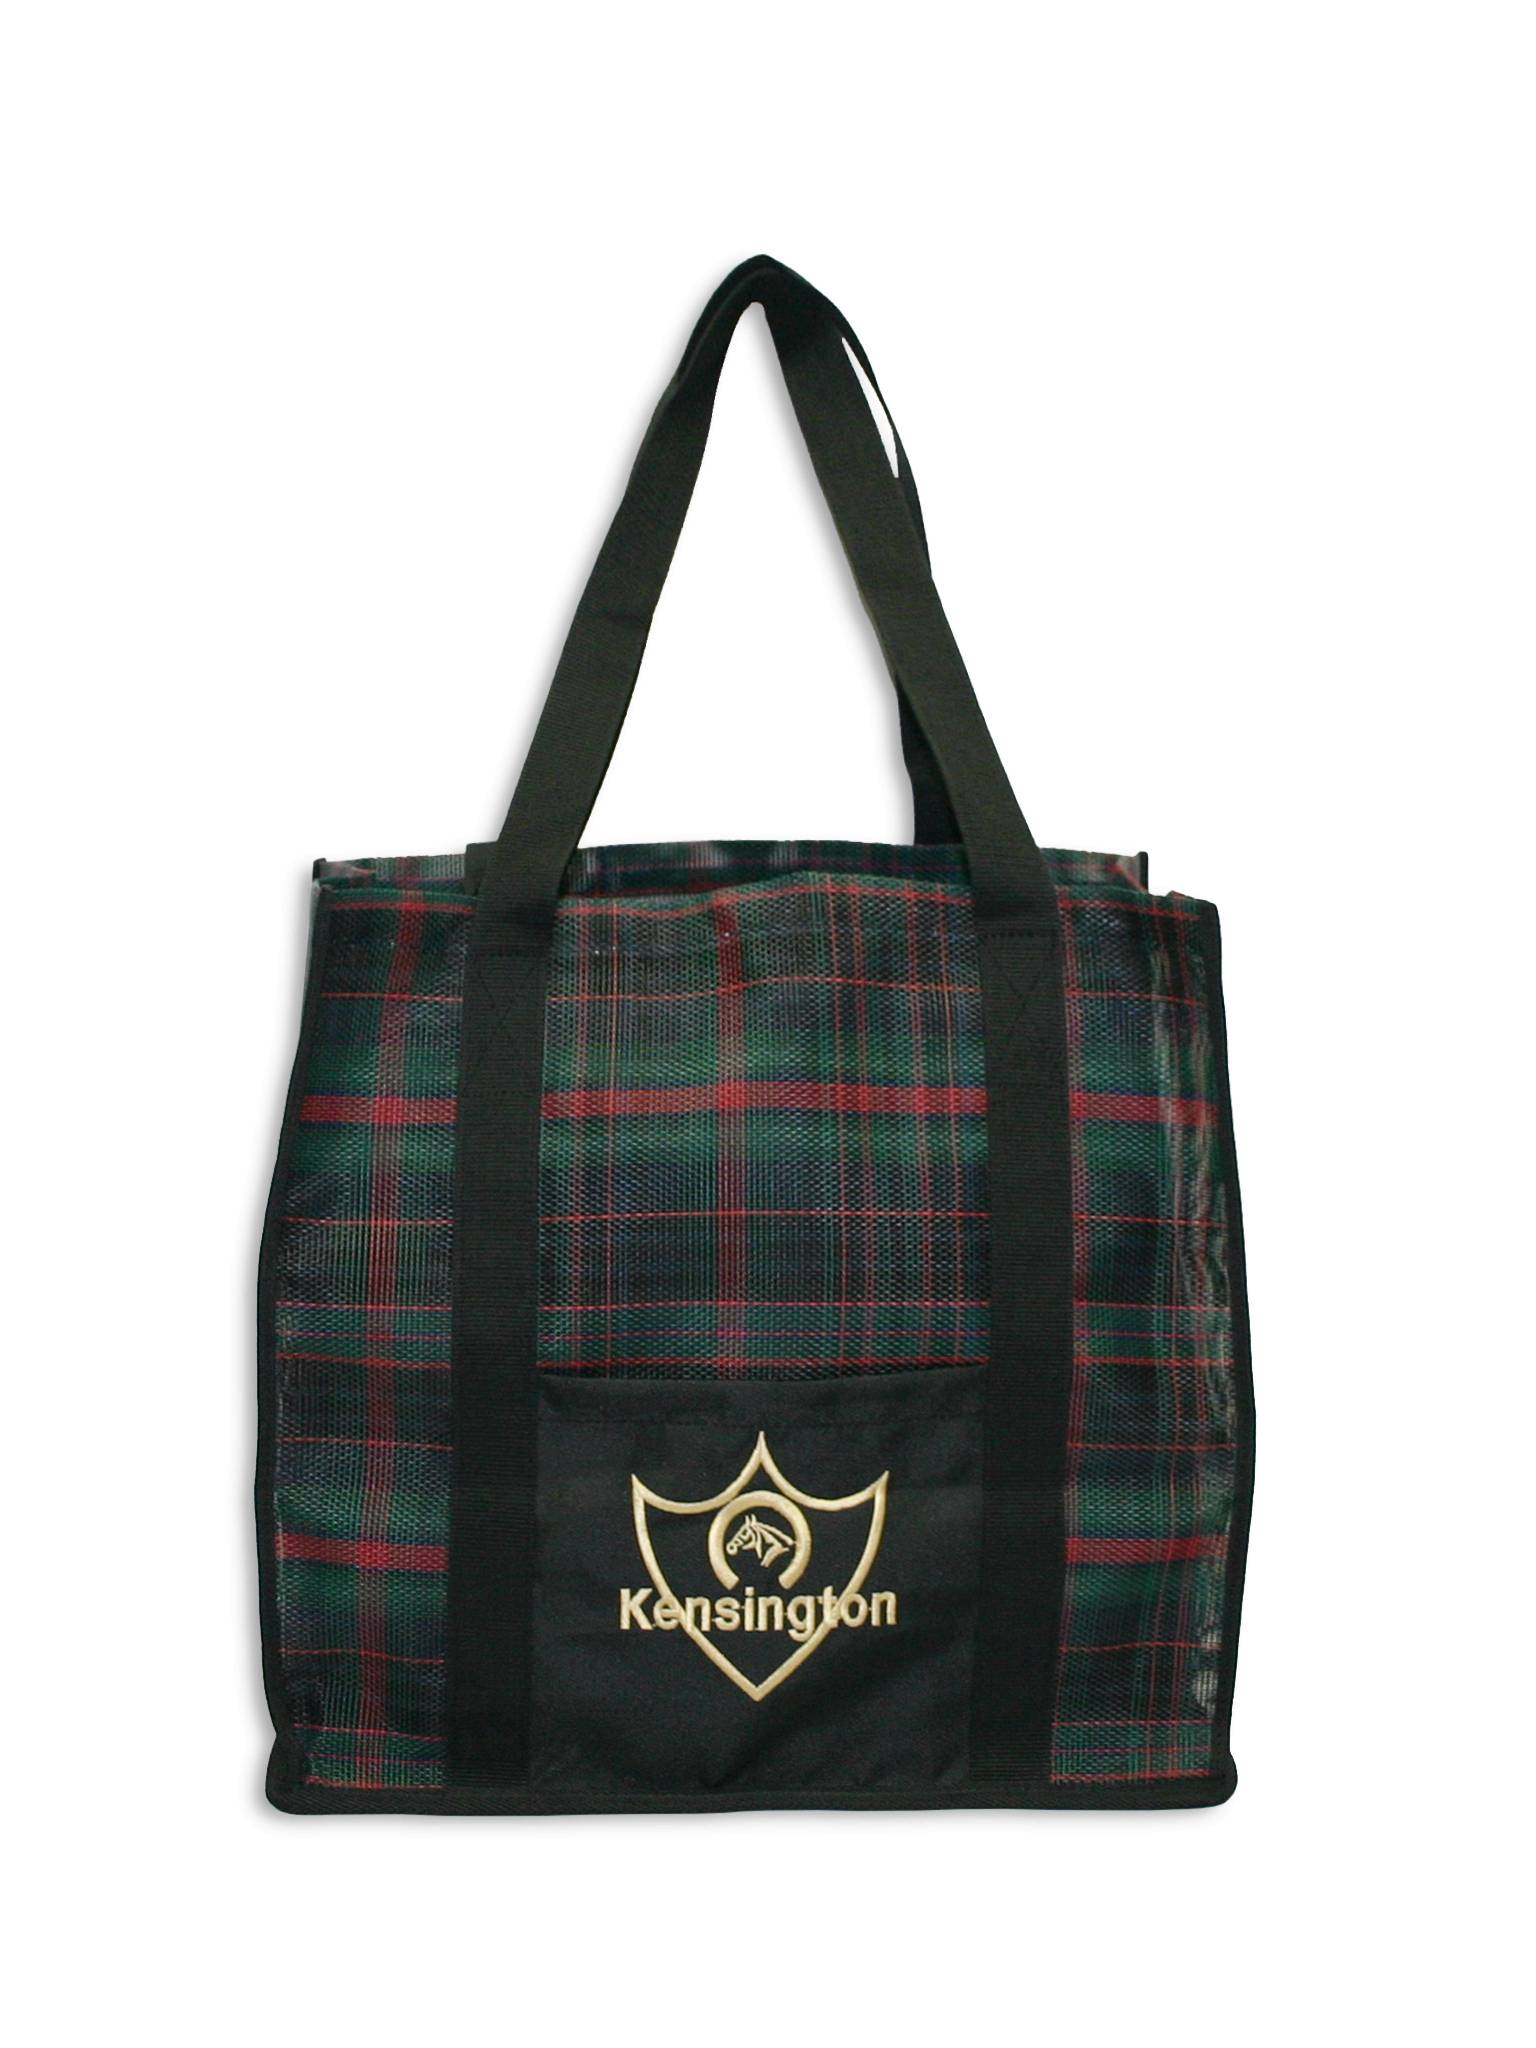 Kensington Signature Large Tote Bag